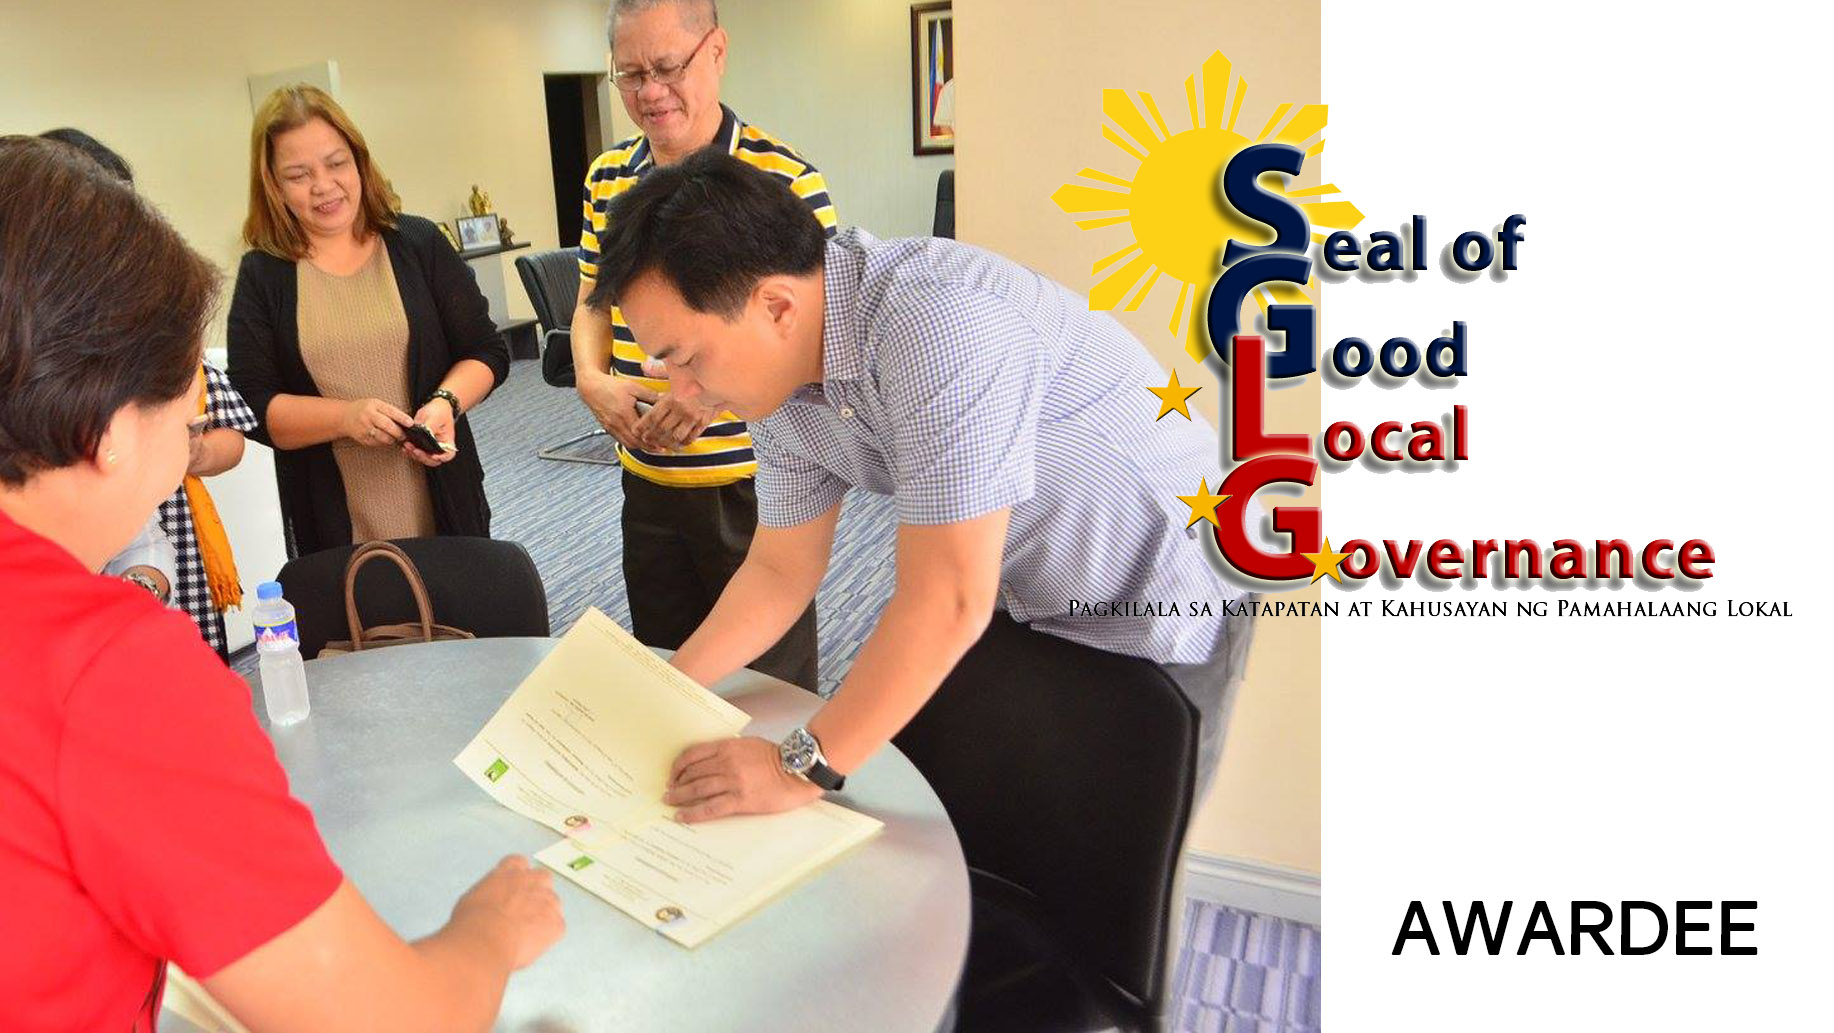 SGLG CALAMBA, Itinanghal Bilang 2017 SEAL OF GOOD LOCAL GOVERNANCE AWARDEE